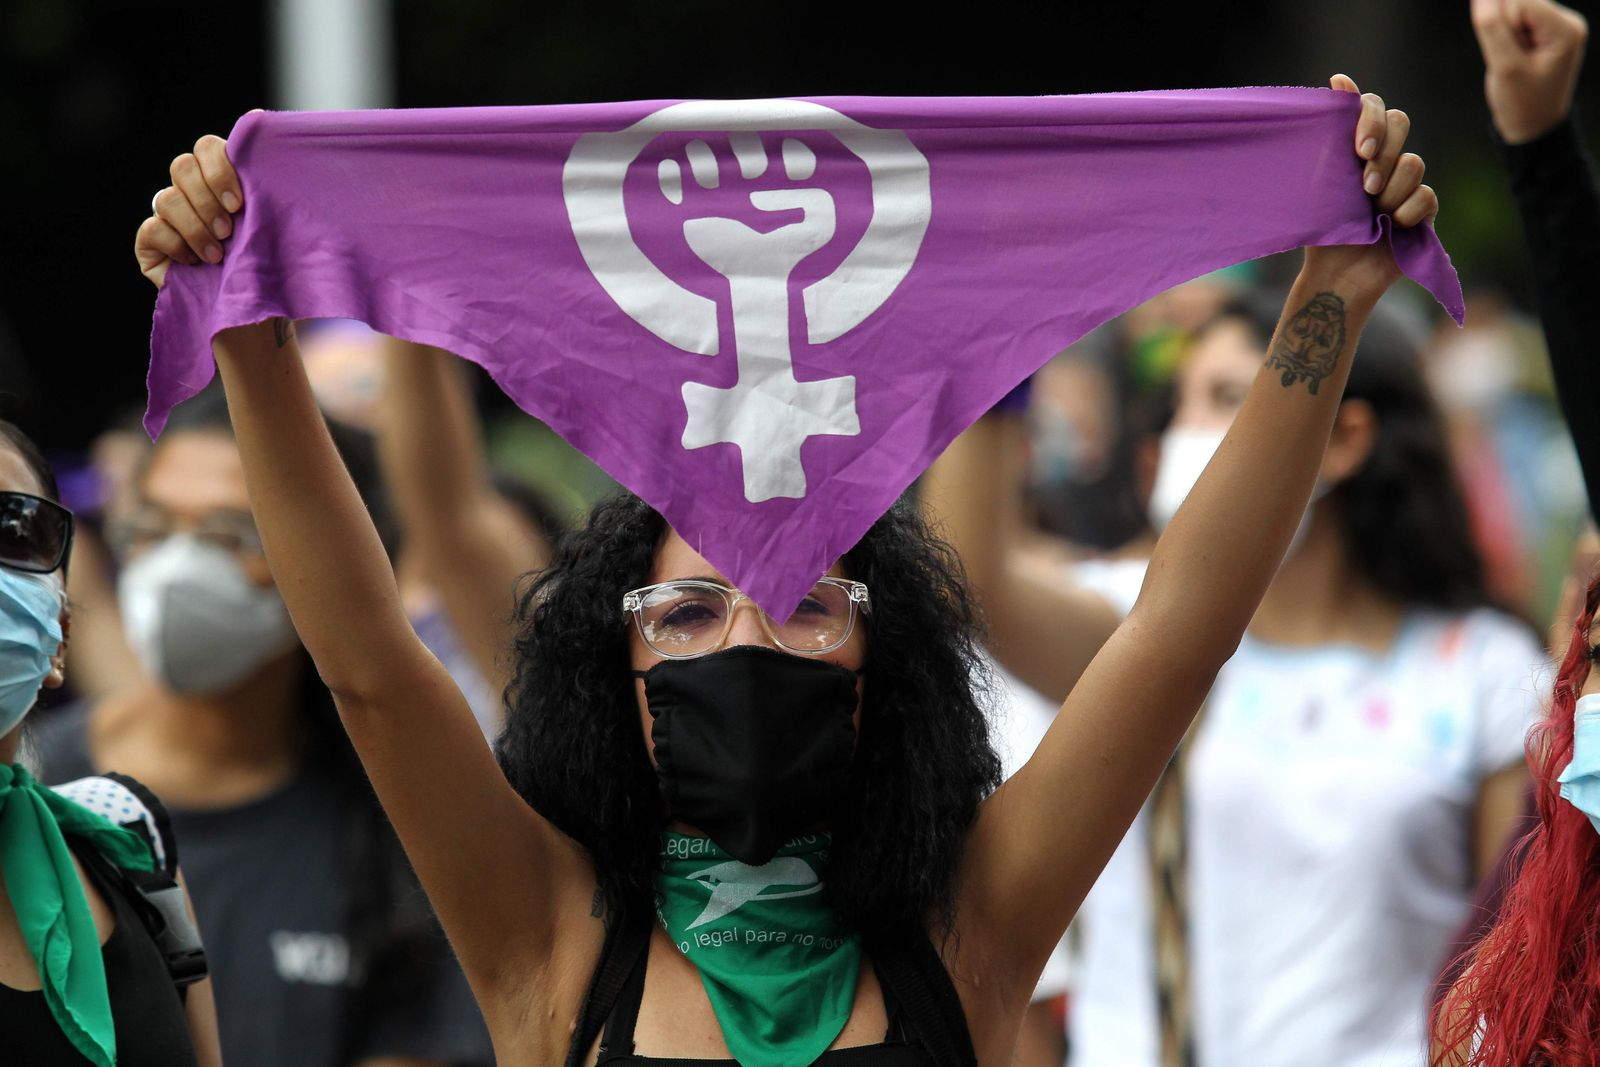 MEXICO-RIGHTS-WOMEN-PROTEST